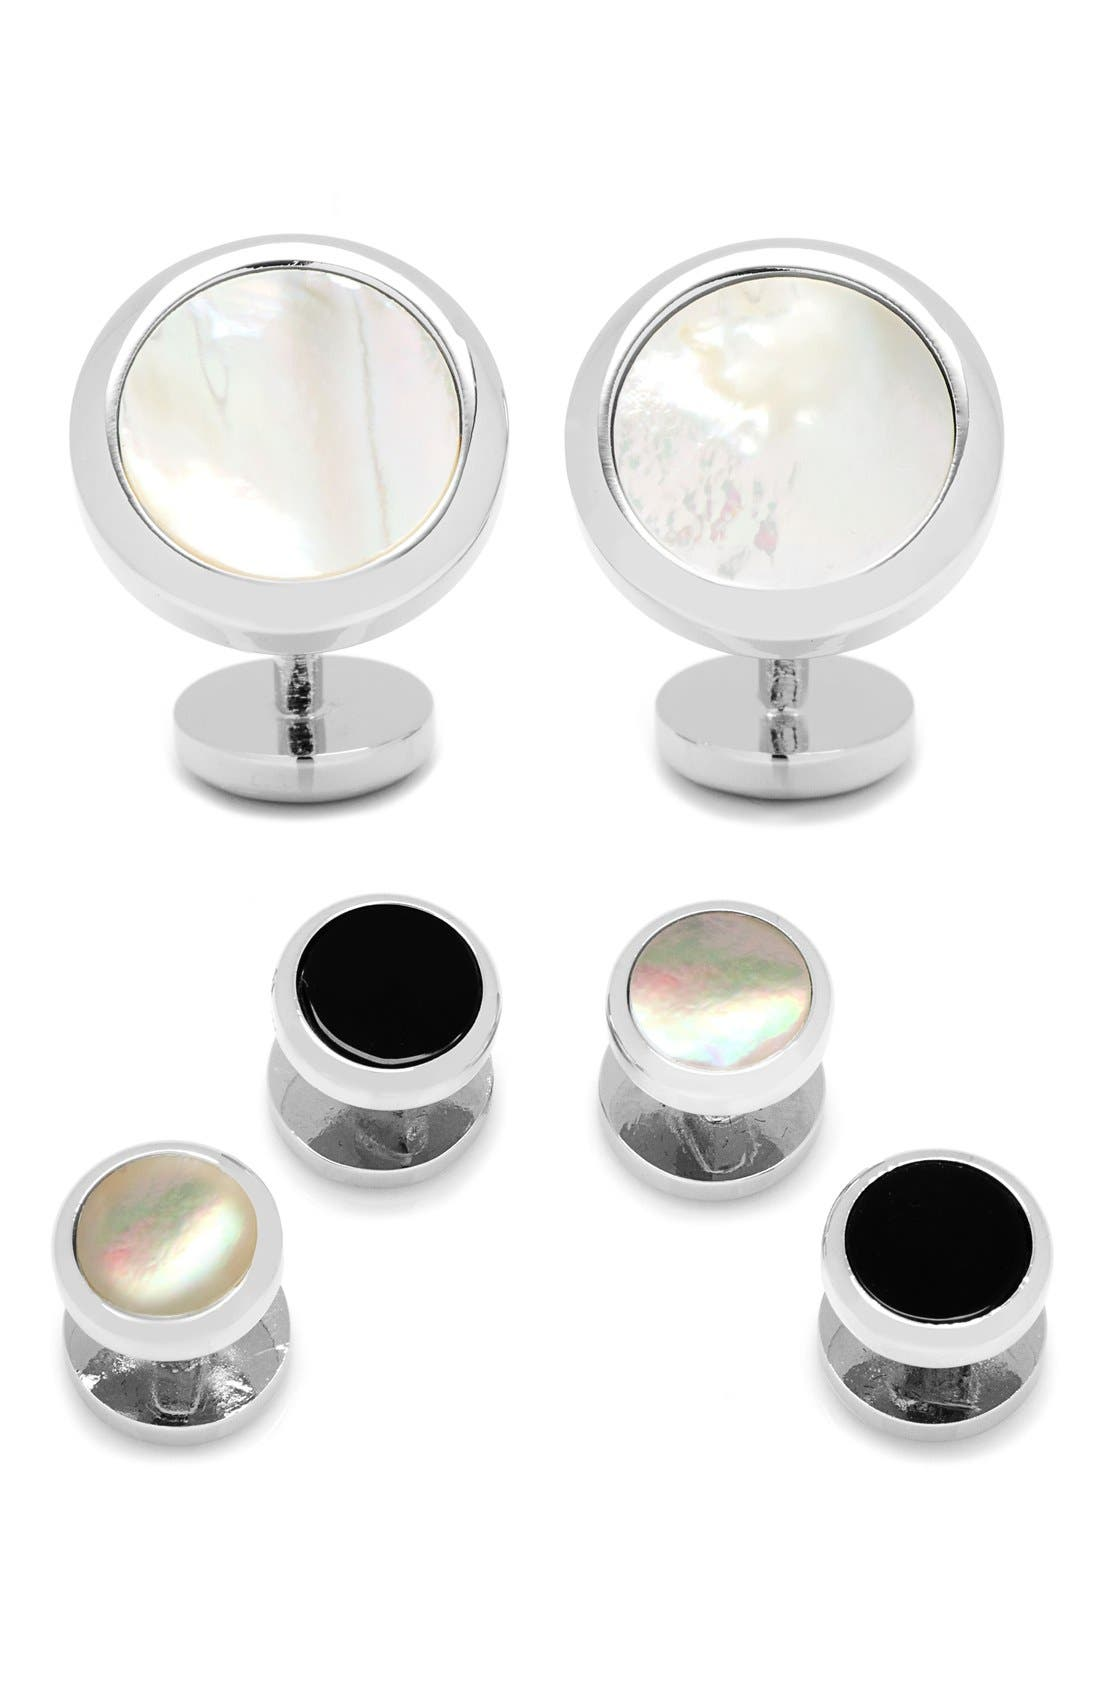 OX AND BULL TRADING CO.,                             Mother-of-Pearl Cuff Links & Shirt Stud Set,                             Main thumbnail 1, color,                             100